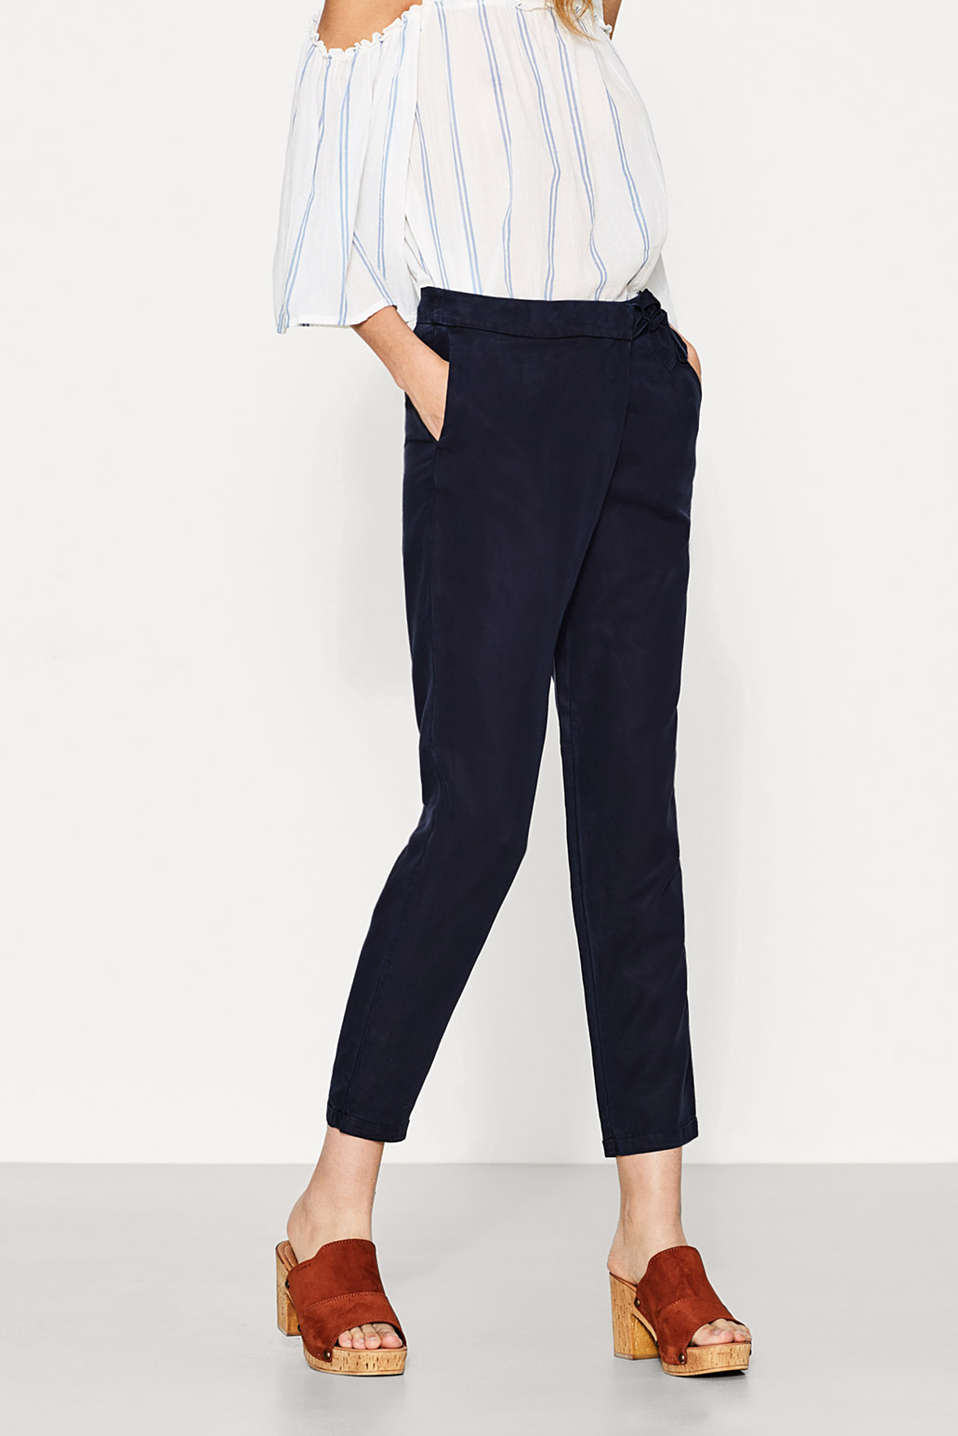 Flowing trousers with a wrap-over effect